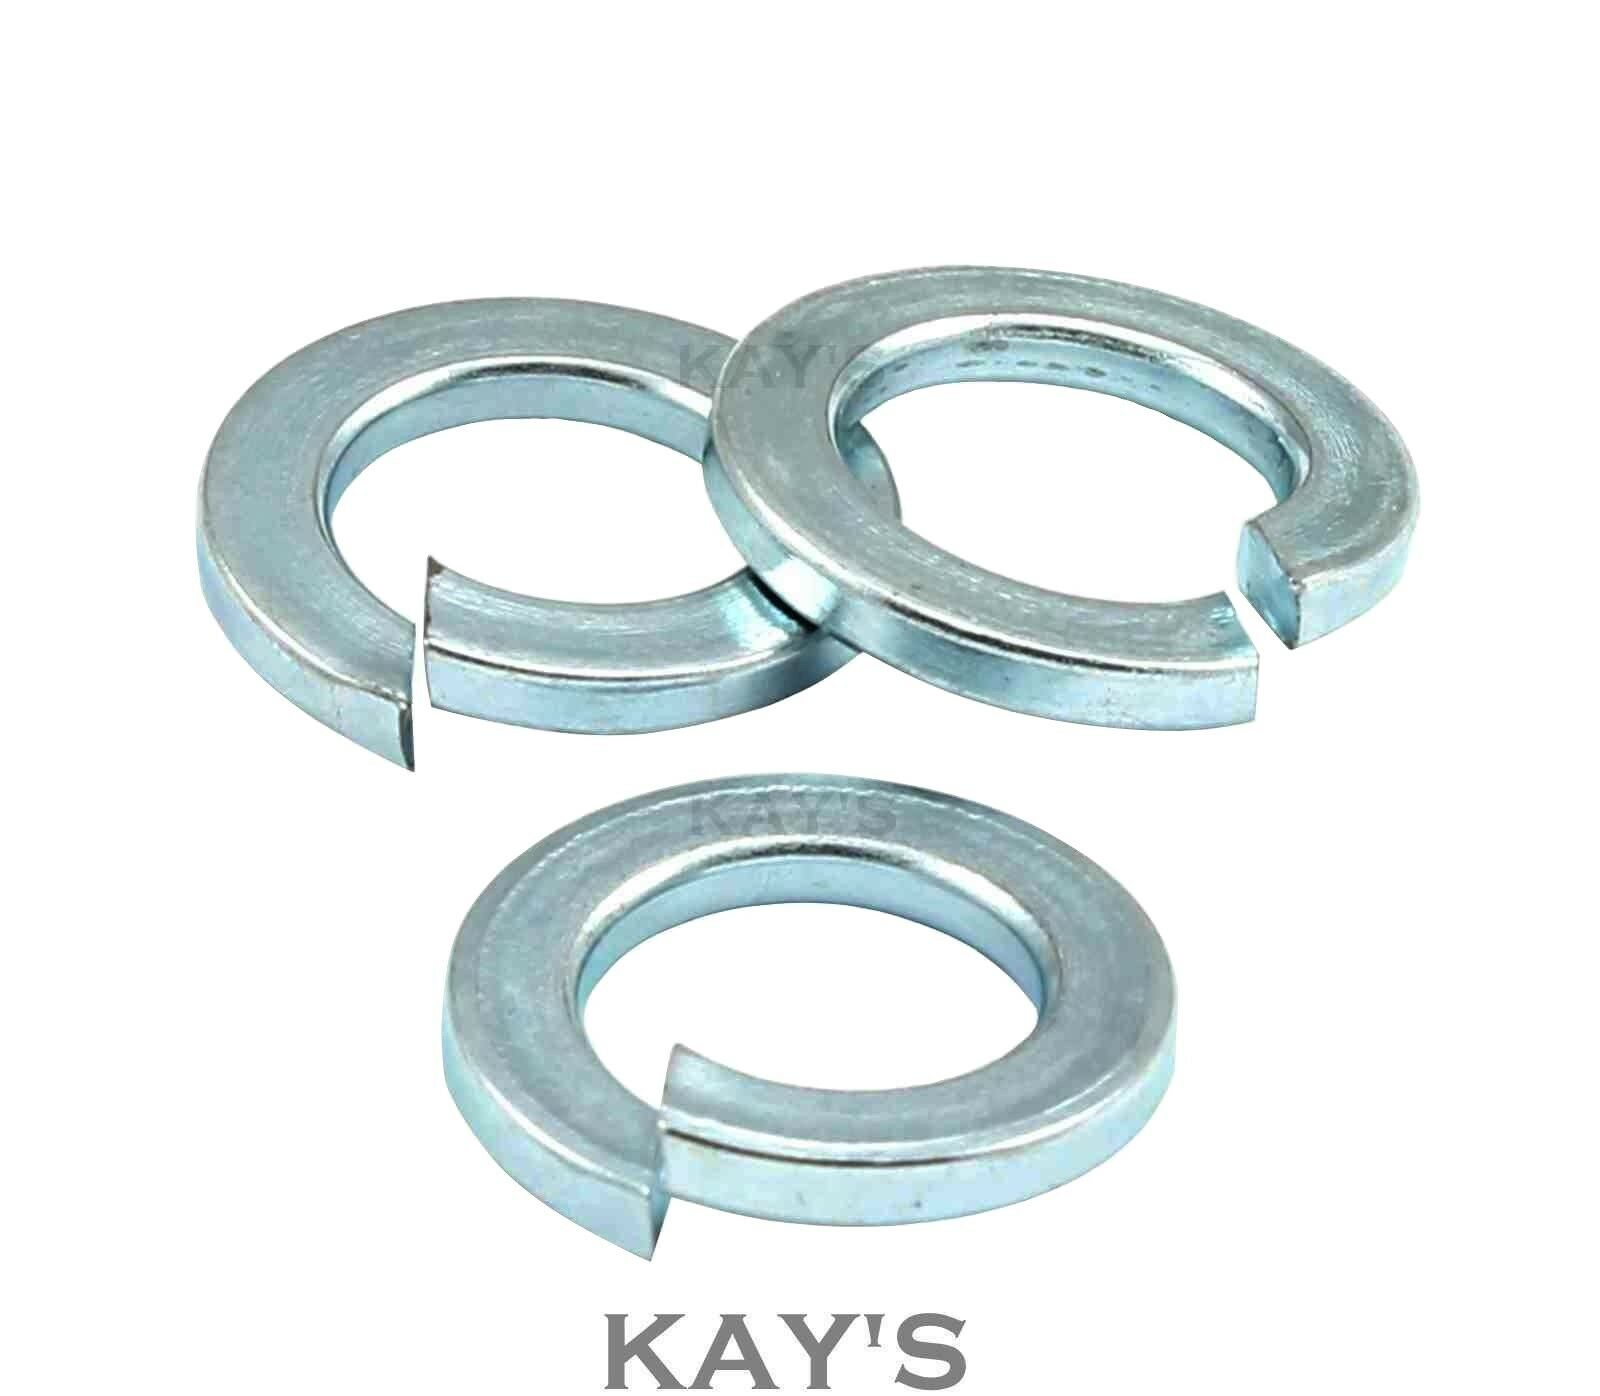 IMPERIAL SPRING WASHERS ZINC PLATED RECTANGULAR COIL 1/4 5/16 3/8 7/16 1/2 5/8